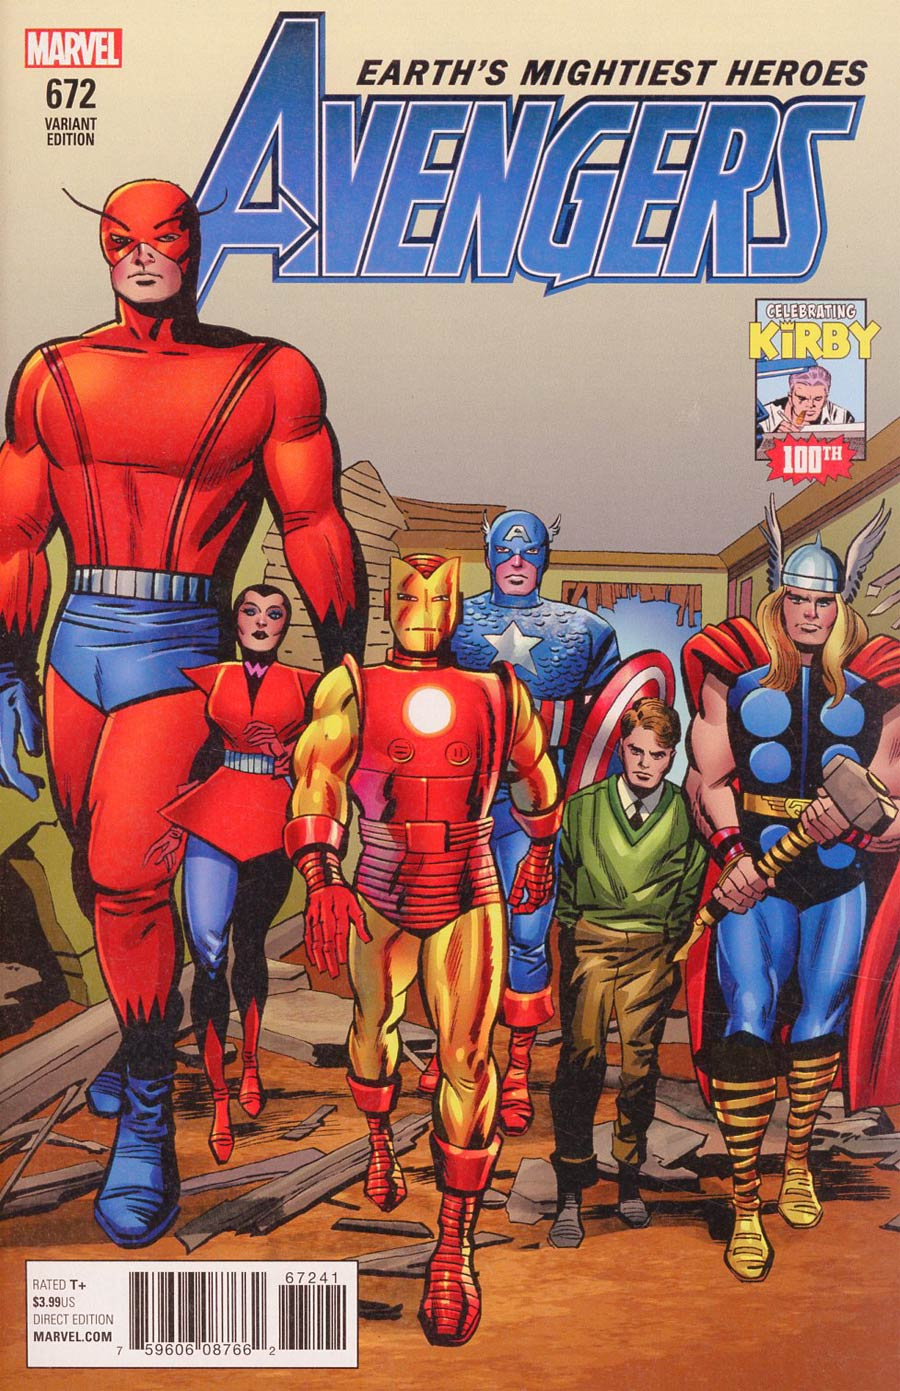 Avengers Vol 6 #672 Cover D Incentive Jack Kirby 100th Anniversary Variant Cover (Worlds Collide Part 1)(Marvel Legacy Tie-In)